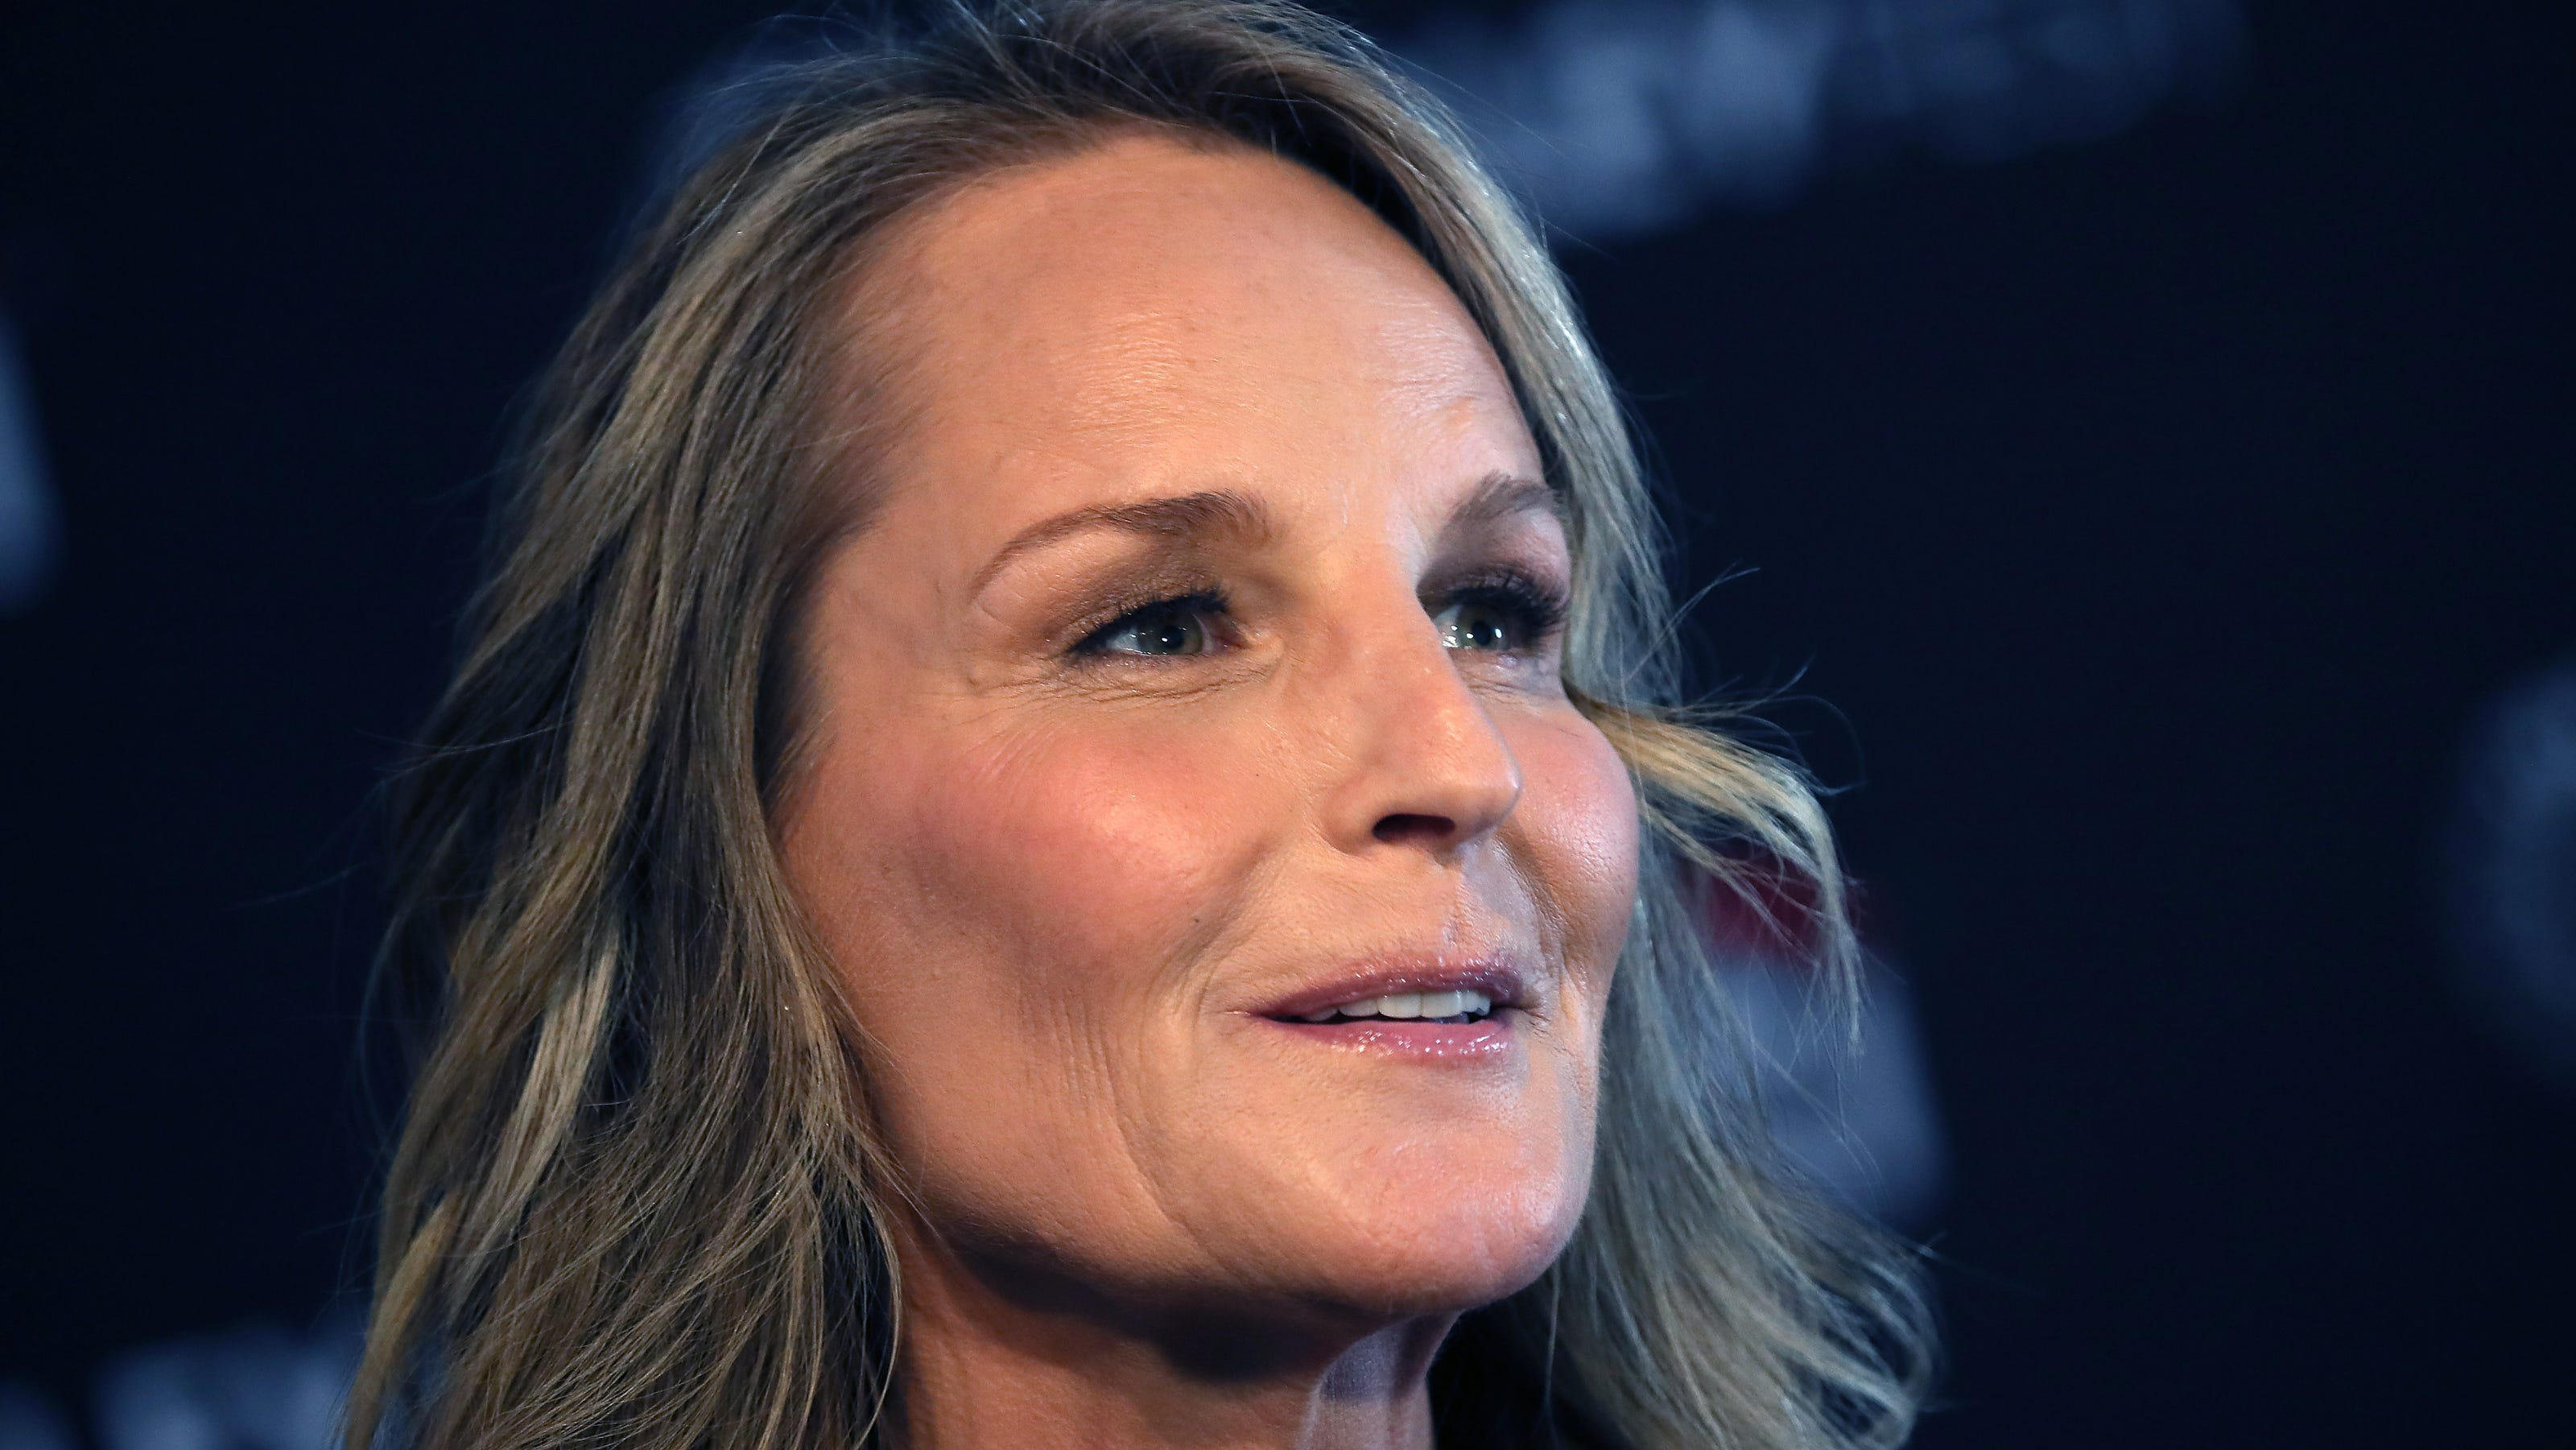 Helen Hunt's grateful to return to 'Mad About You' revival after crash